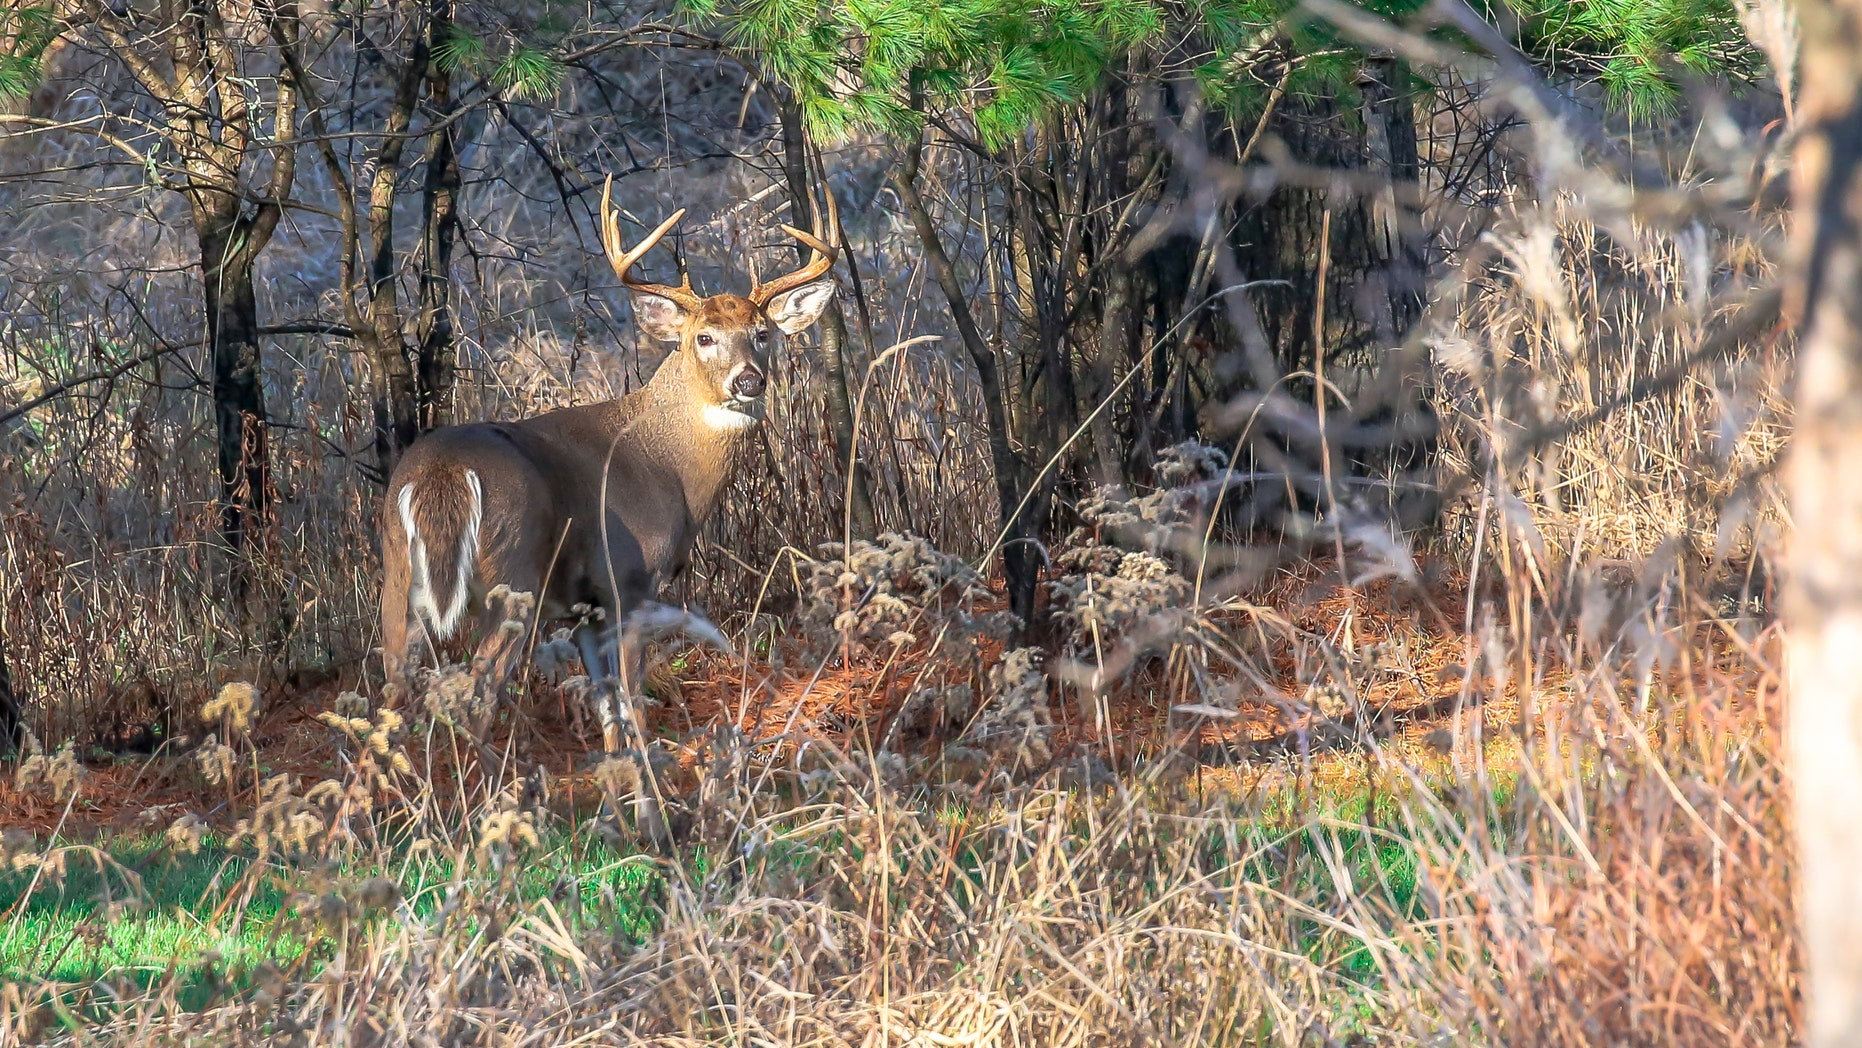 Affected facilities are not allowed to move live deer on or off their premises, however, they can choose to keep unaffected deer alive.